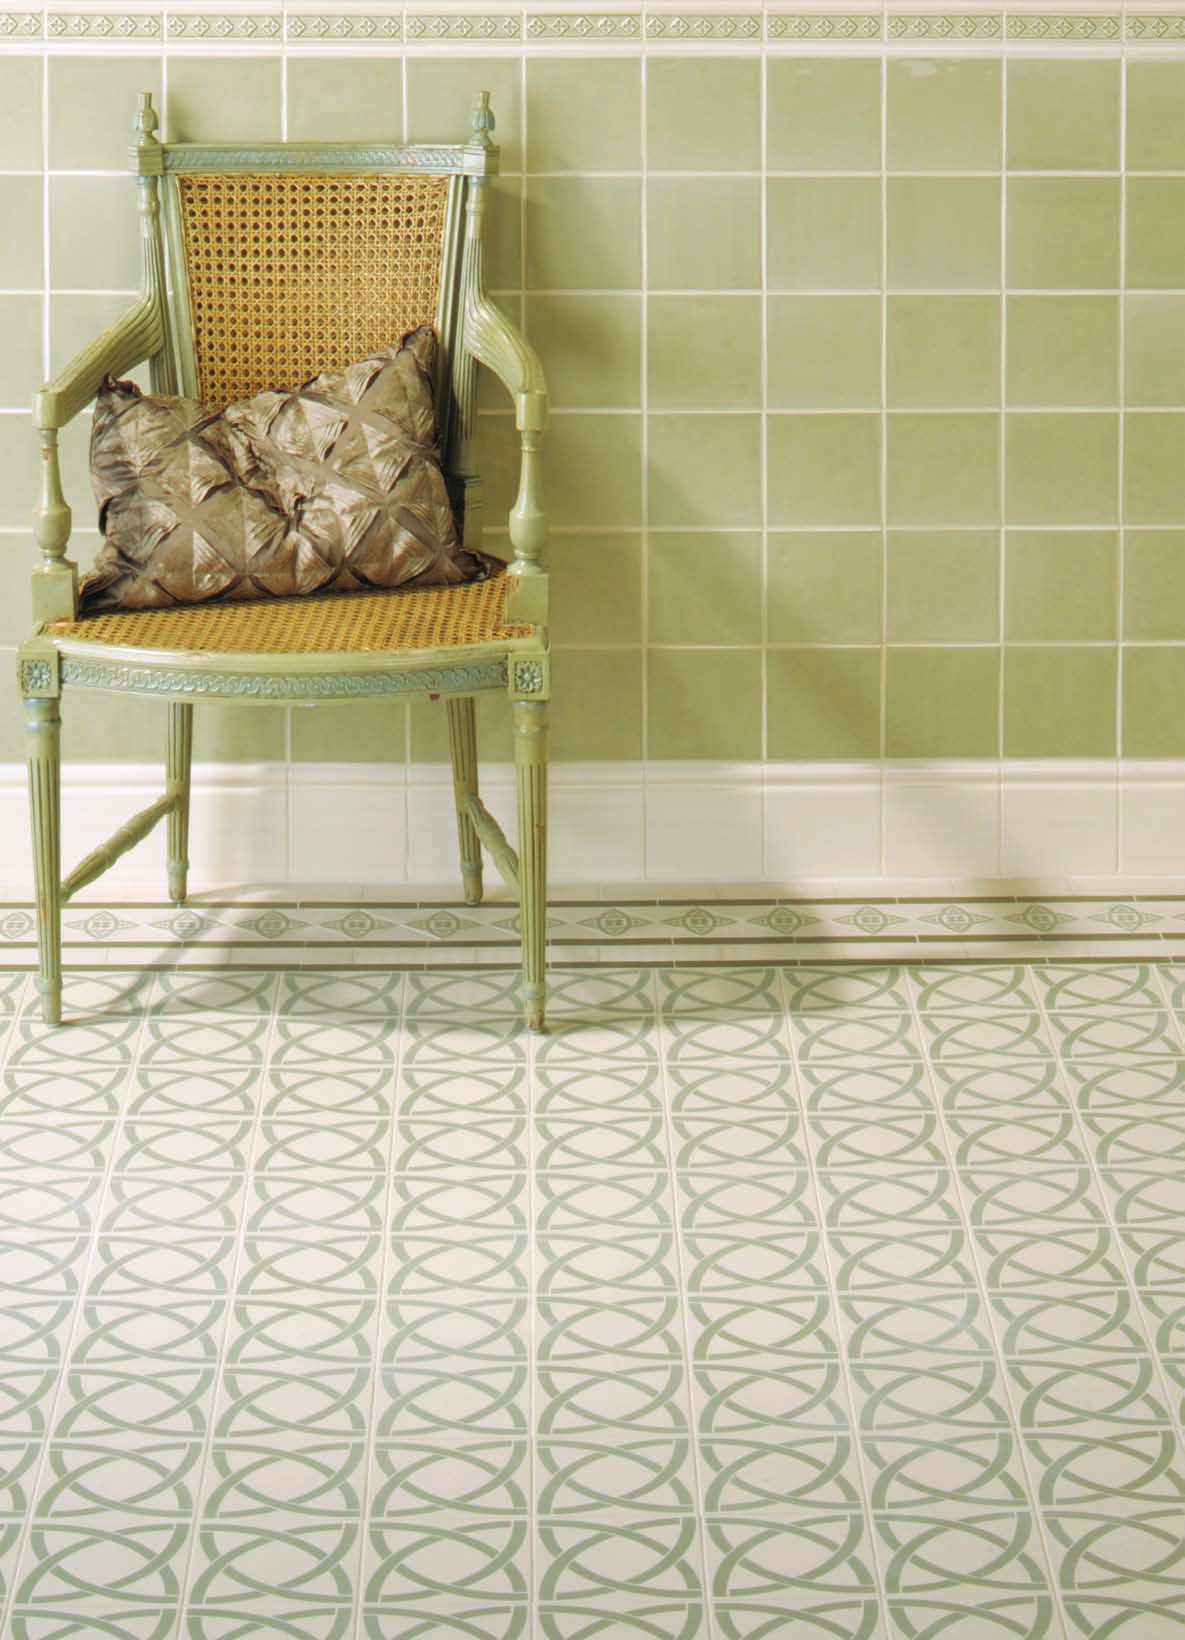 Victorian Floor Tiles Dublin Pattern With Galway Border In